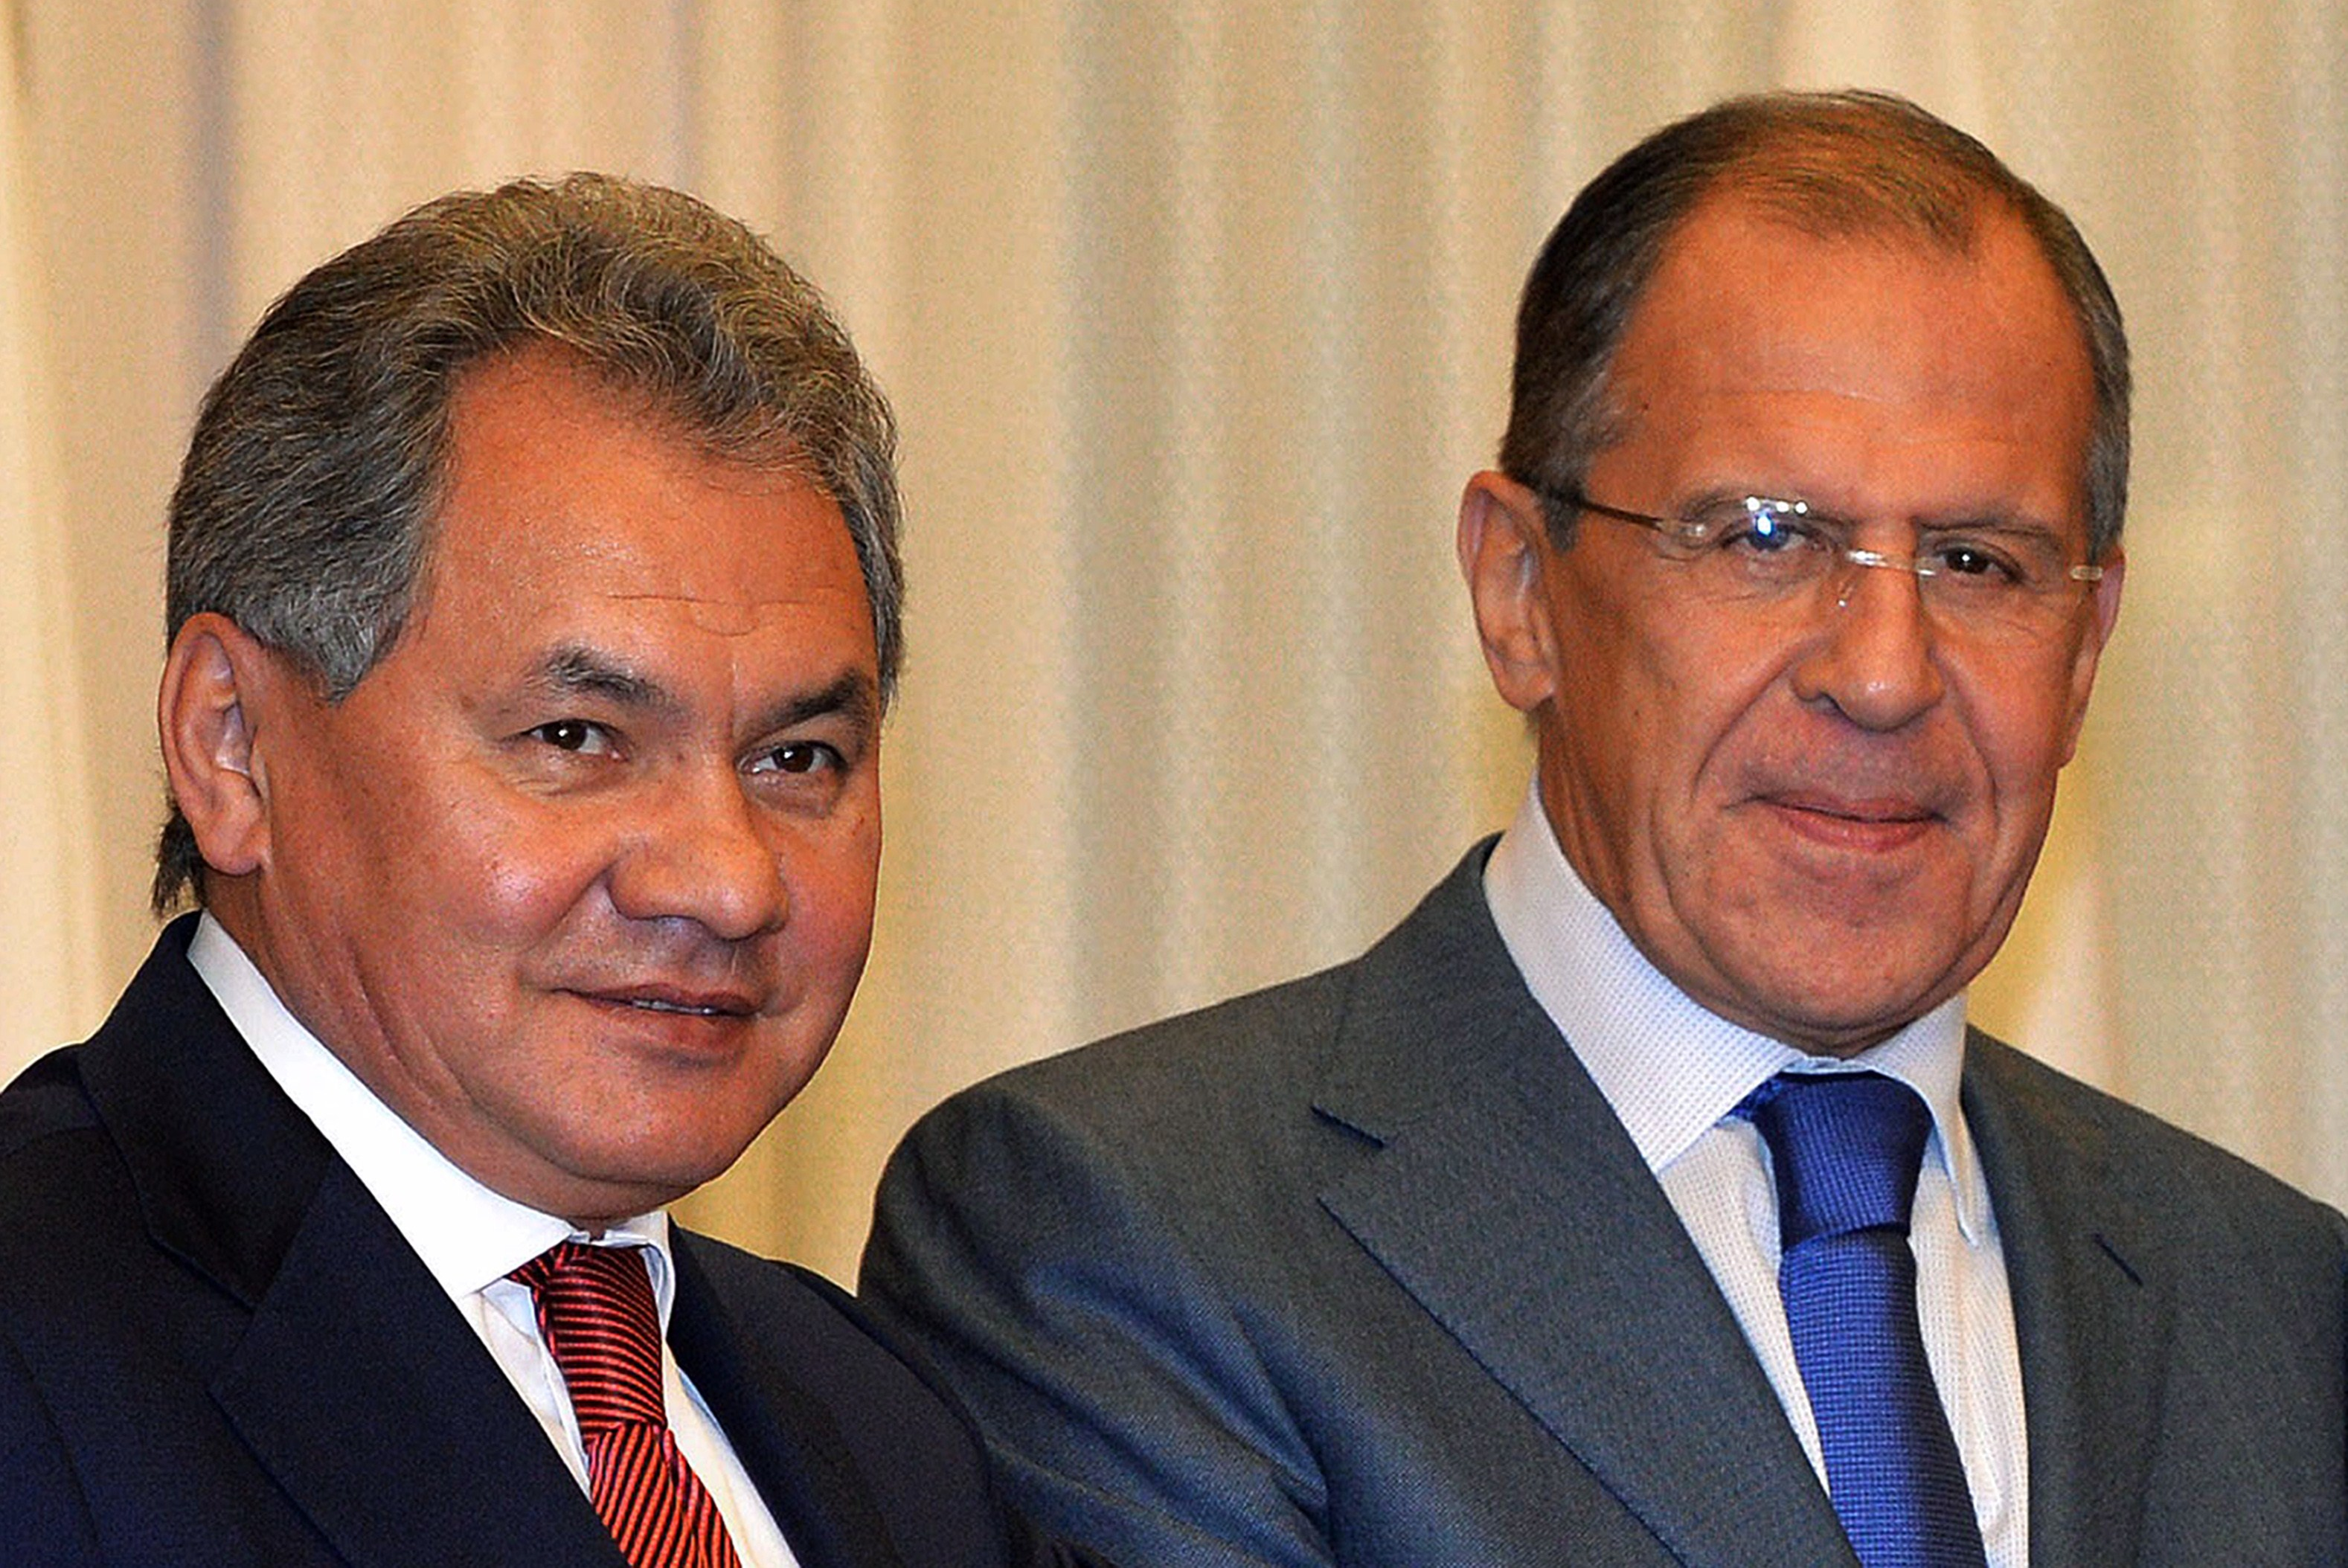 A file picture taken on November 2, 2013, shows (L-R) Russia's Defence Minister Sergei Shoigu and Foreign Minister Sergey Lavrov smiling during their visit to Tokyo.  (AFP PHOTO / POOL / Yoshikazu TSUNO)